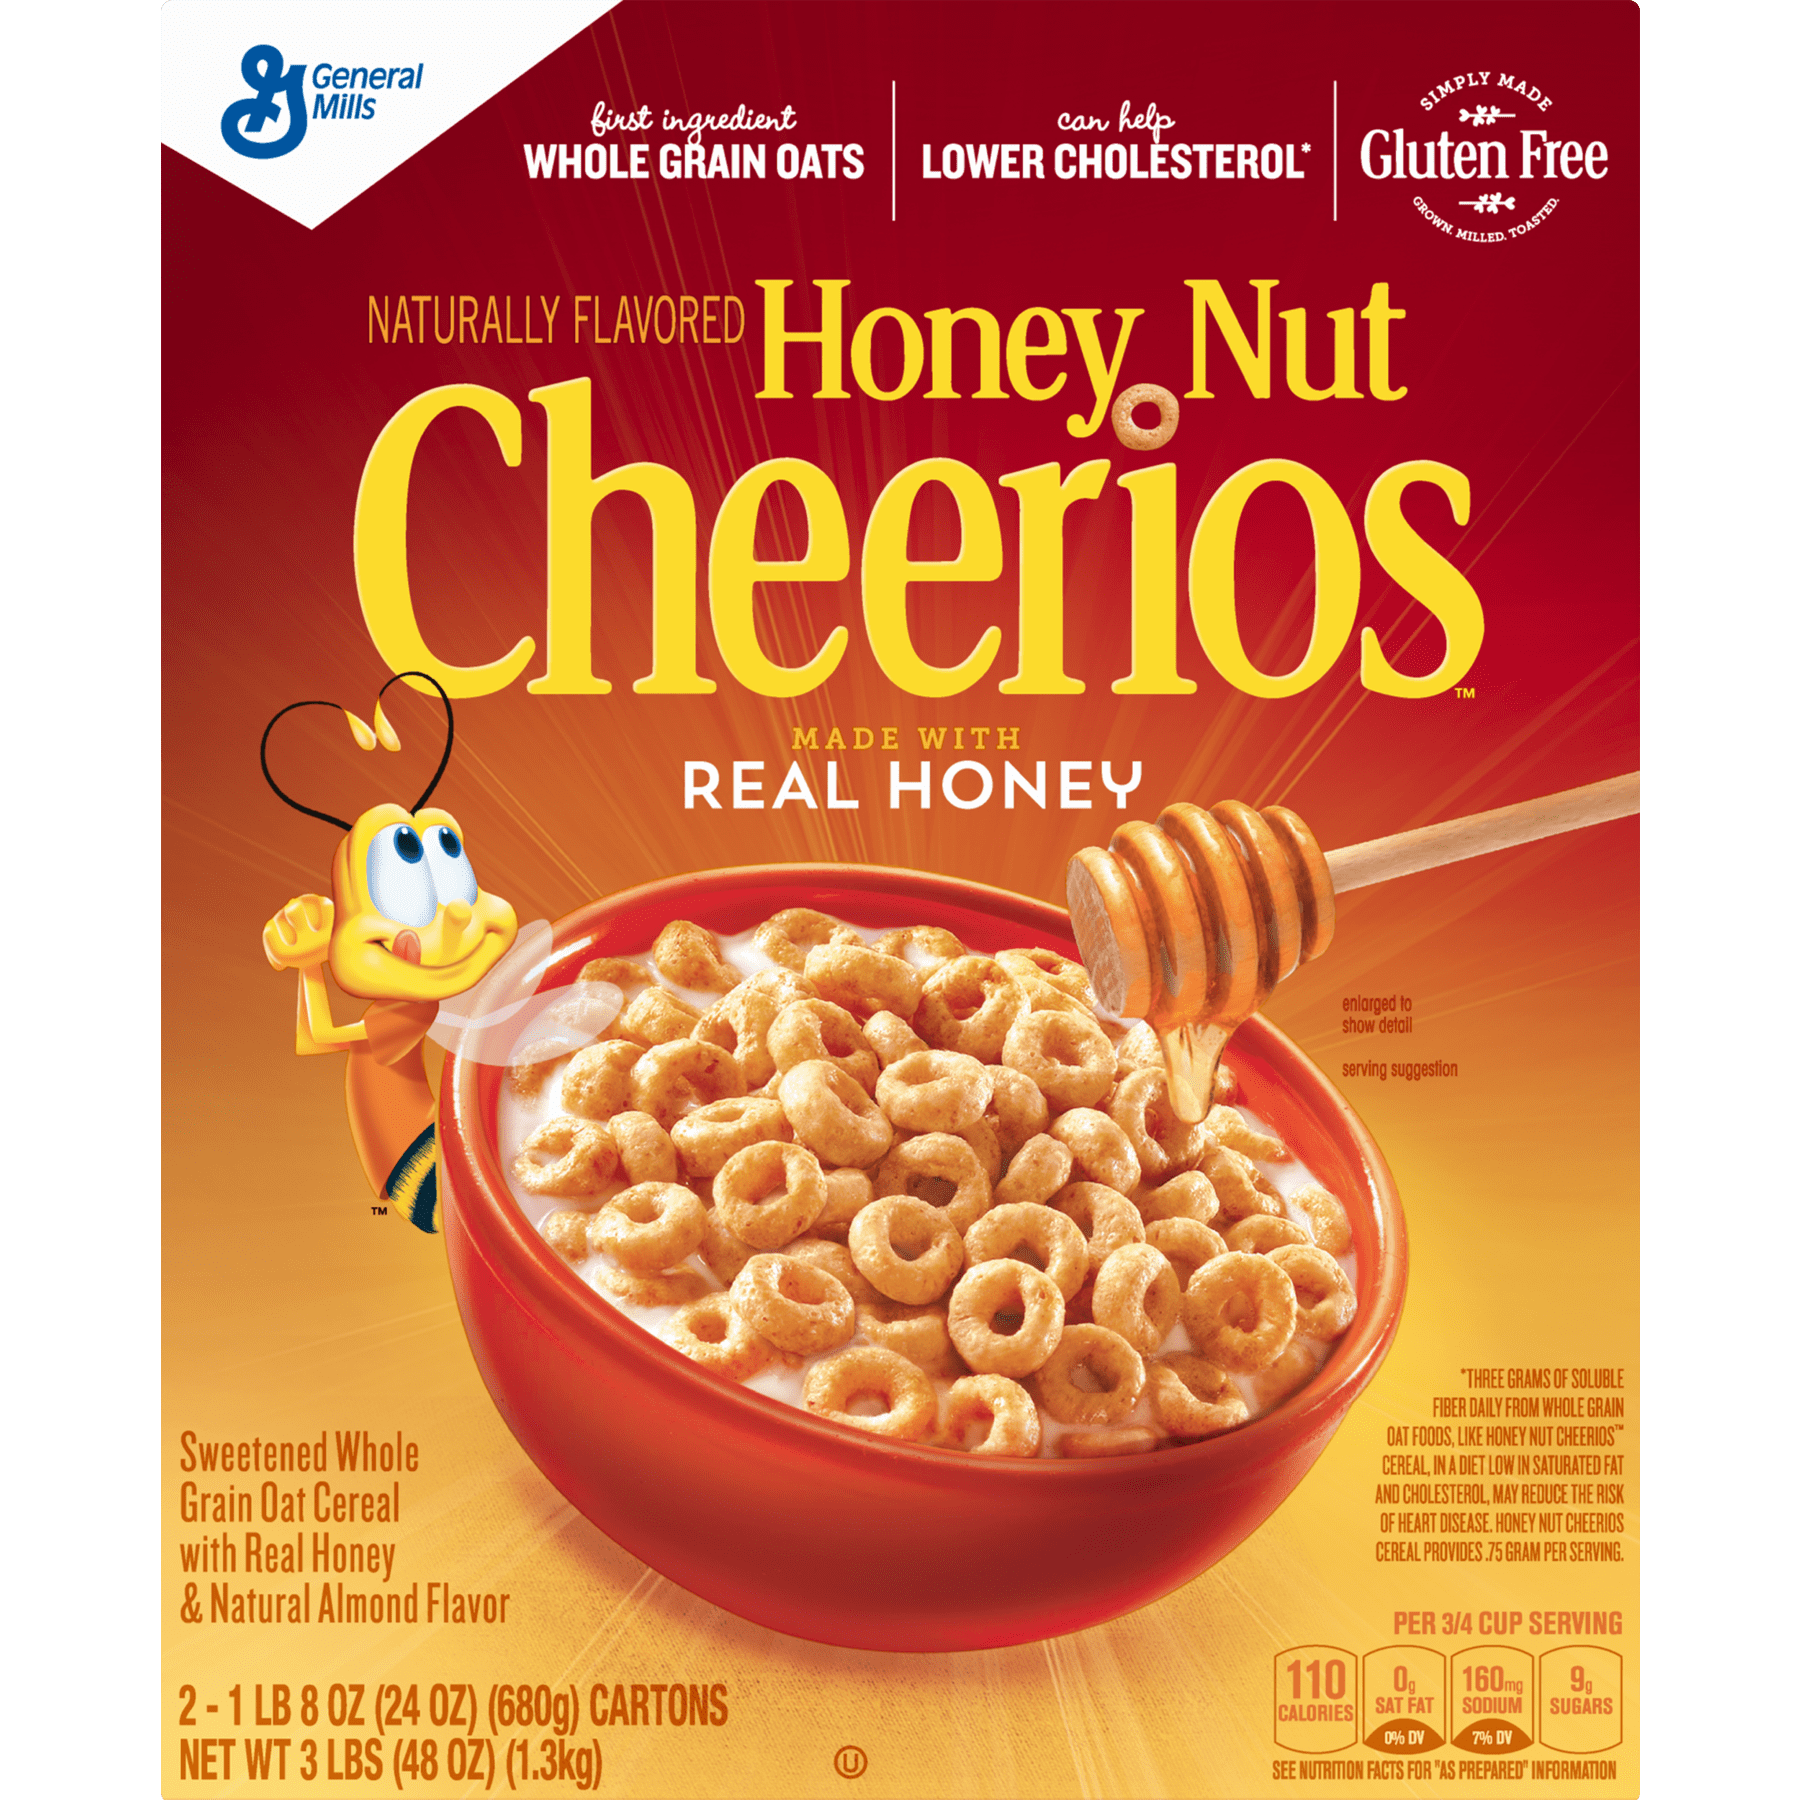 honey nut cheerios gluten free cereal, 48 oz - walmart